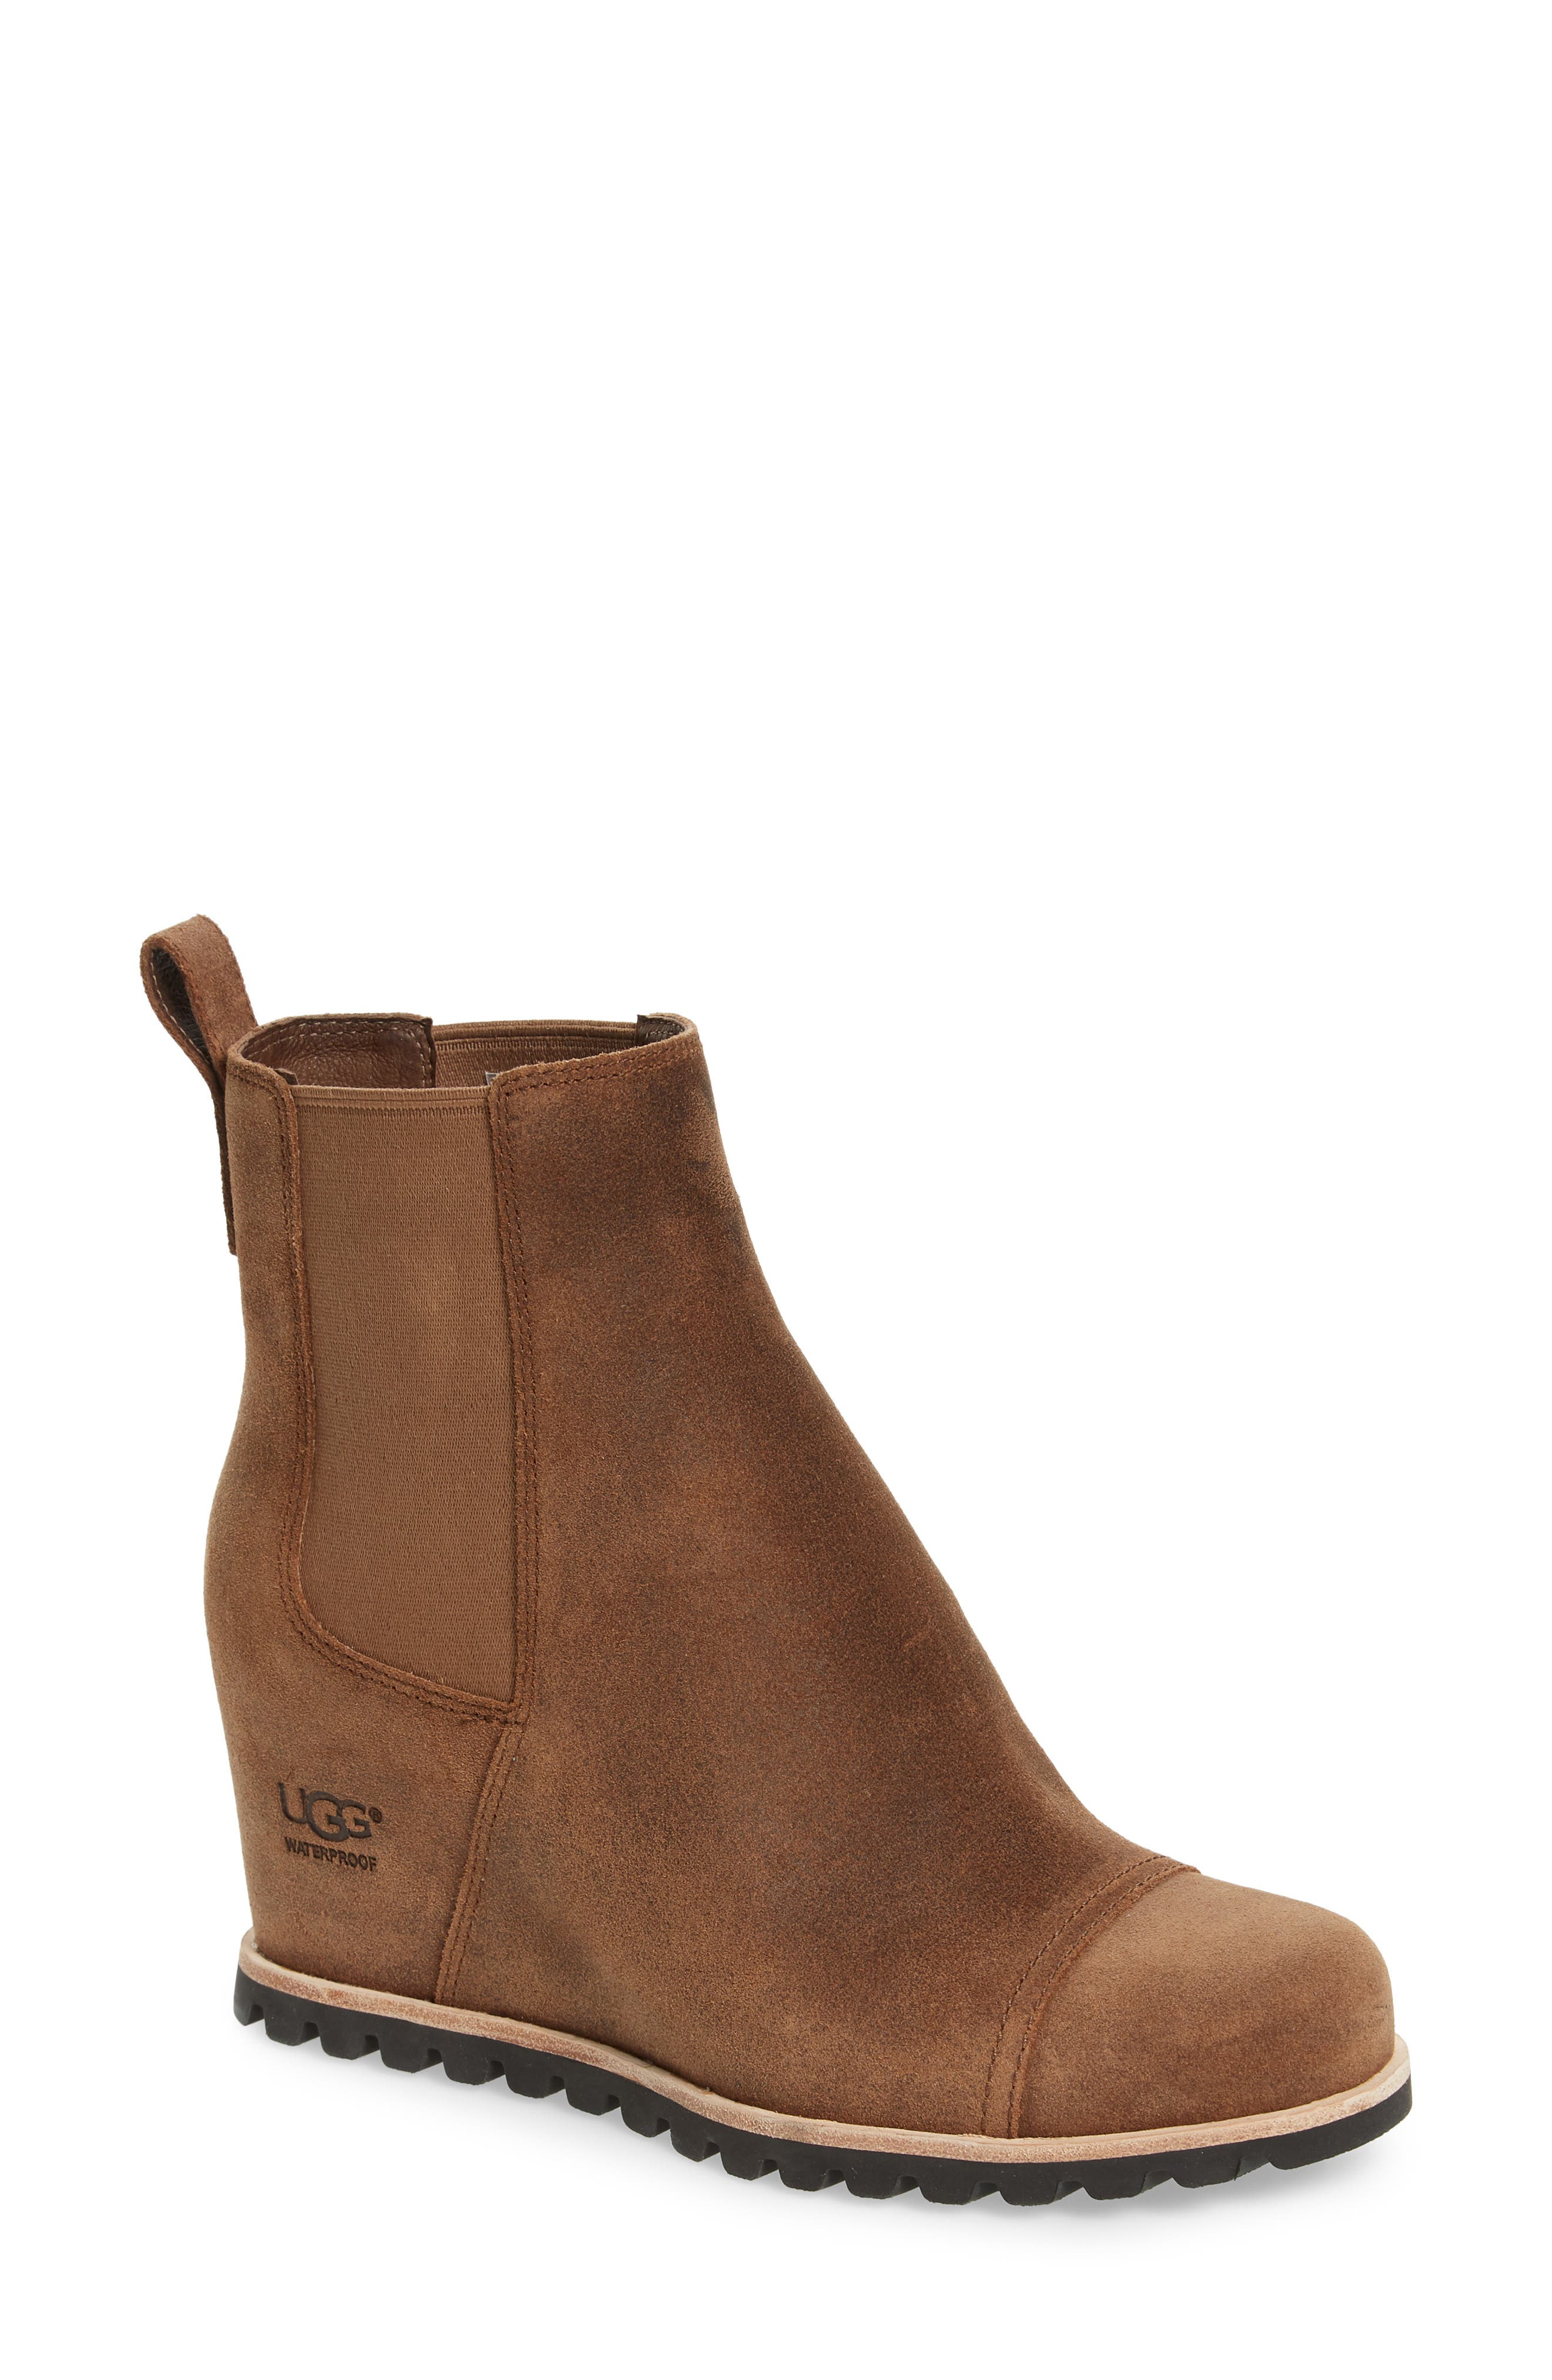 Pax Waterproof Wedge Boot,                         Main,                         color, CHIPMUNK LEATHER